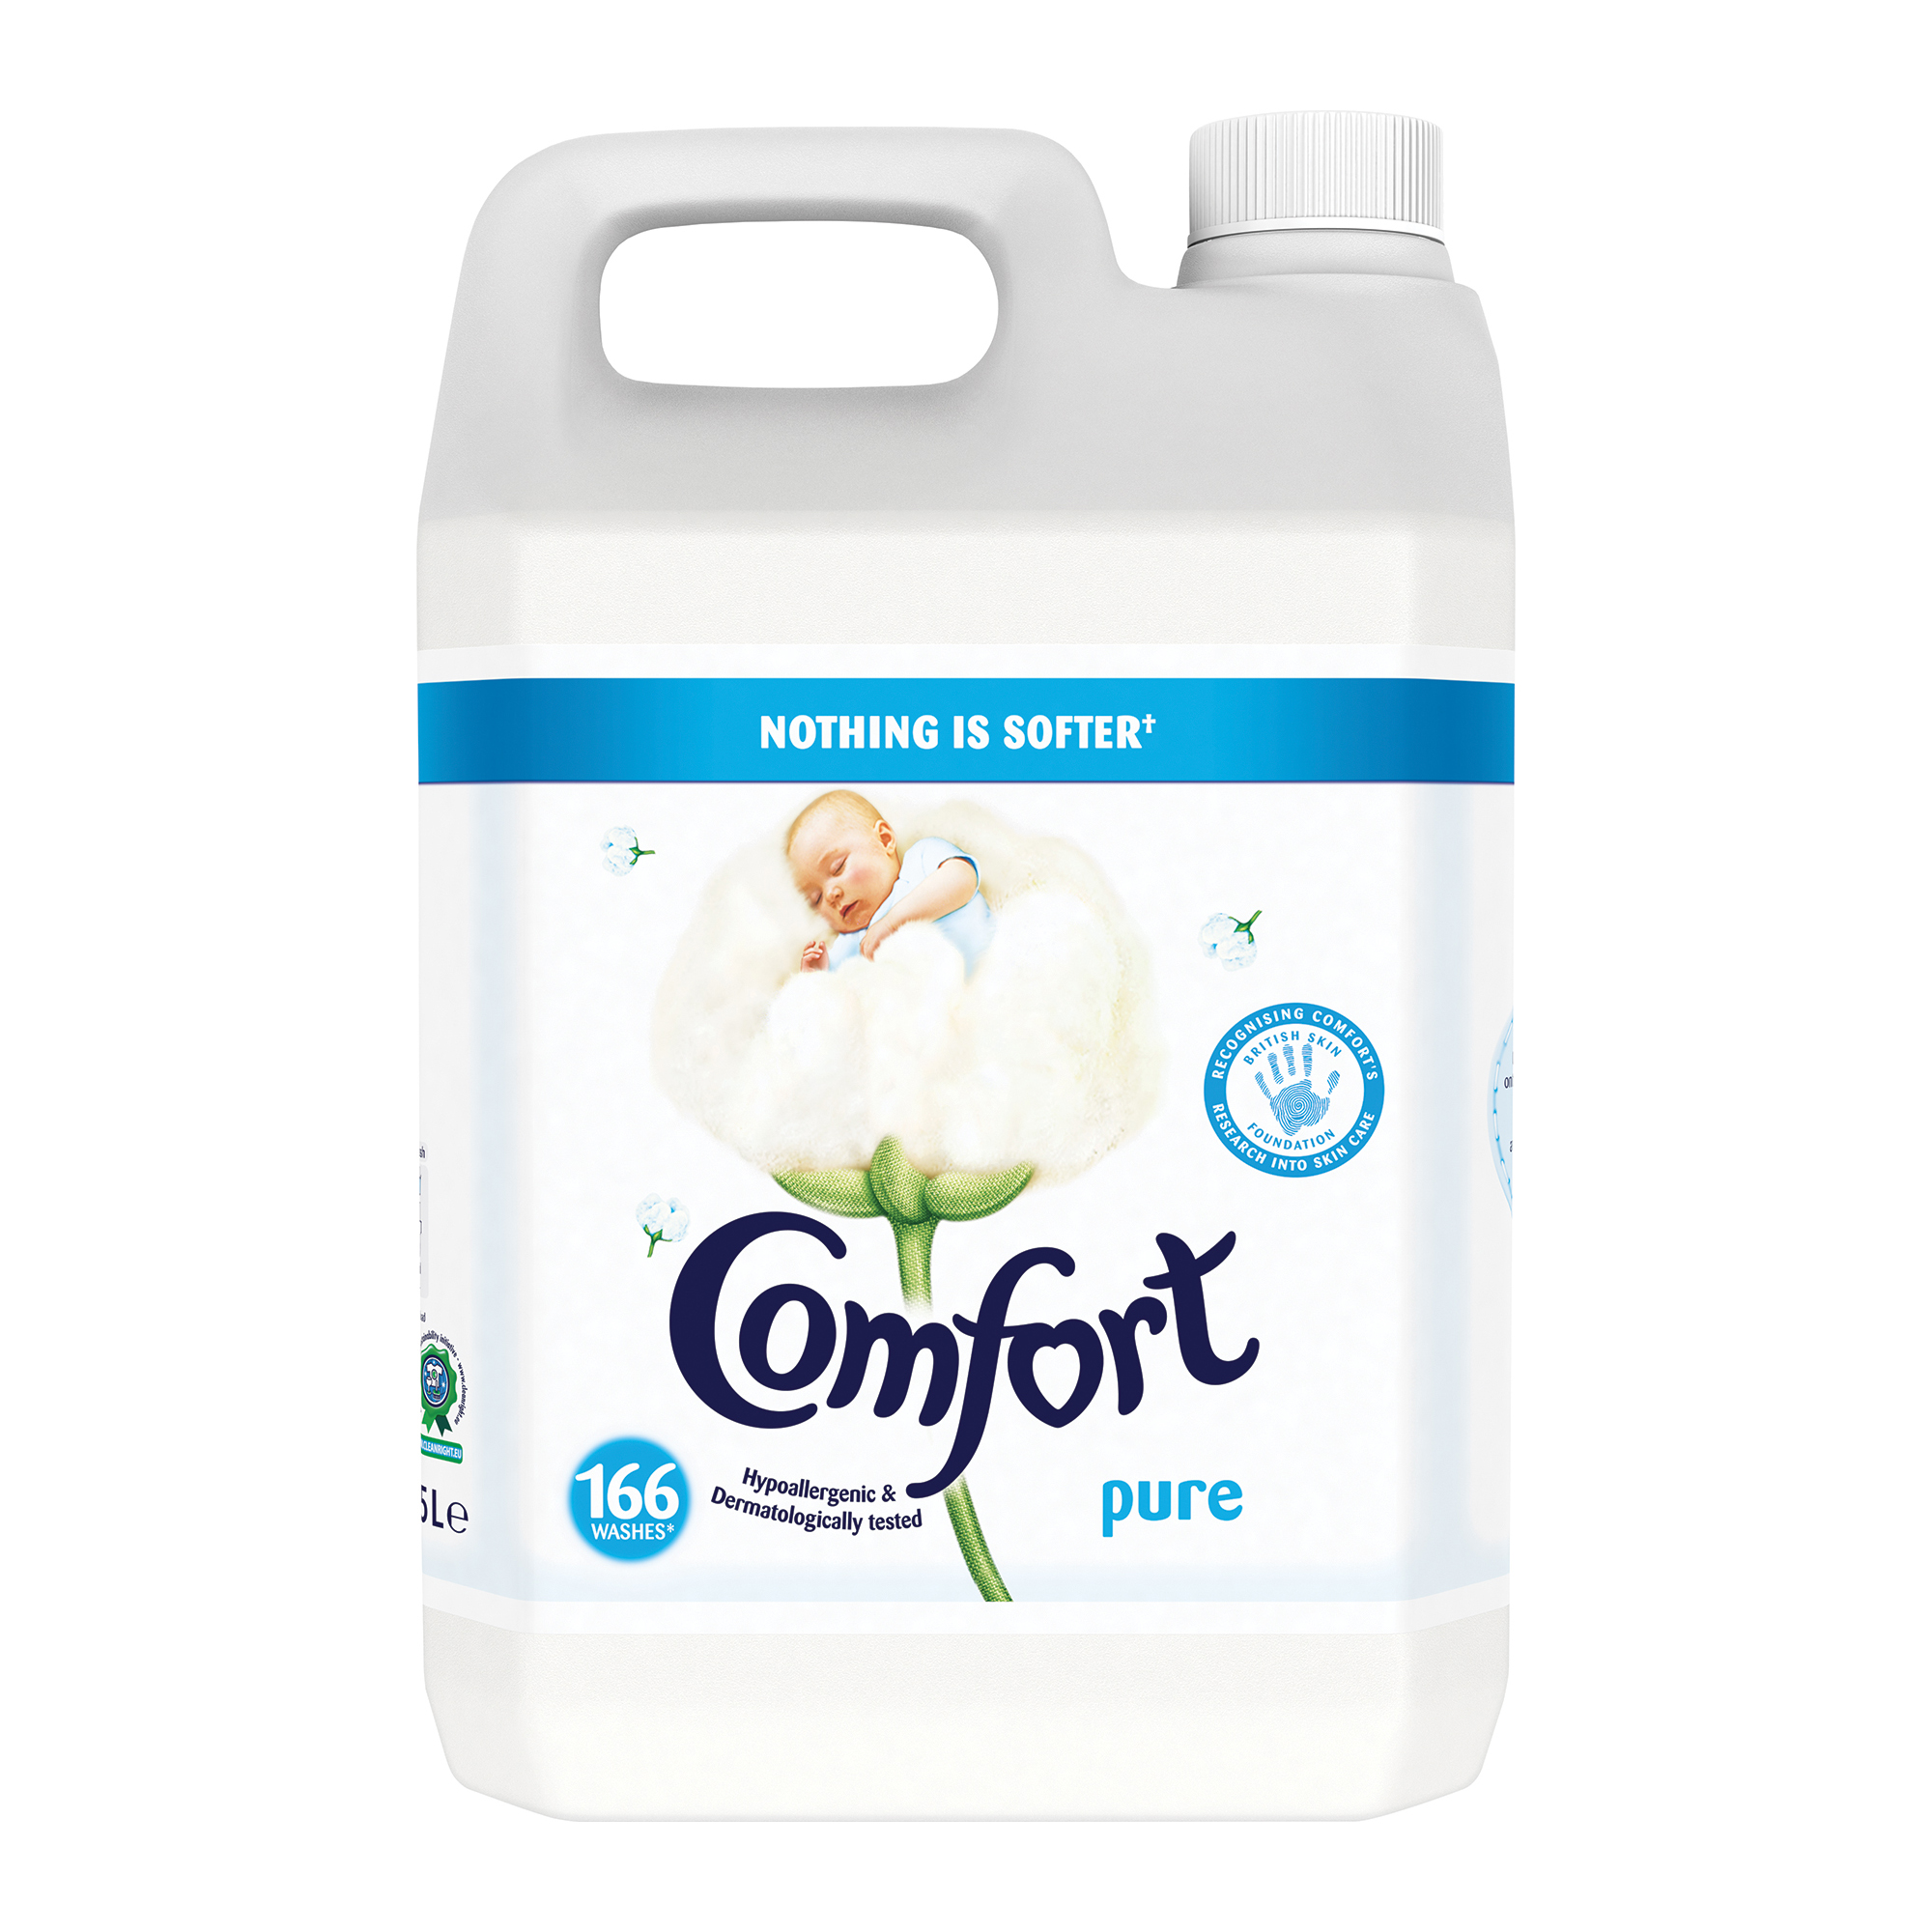 Image for Comfort Concentrated Fabric Softener 166 Washes 5L Ref 707822